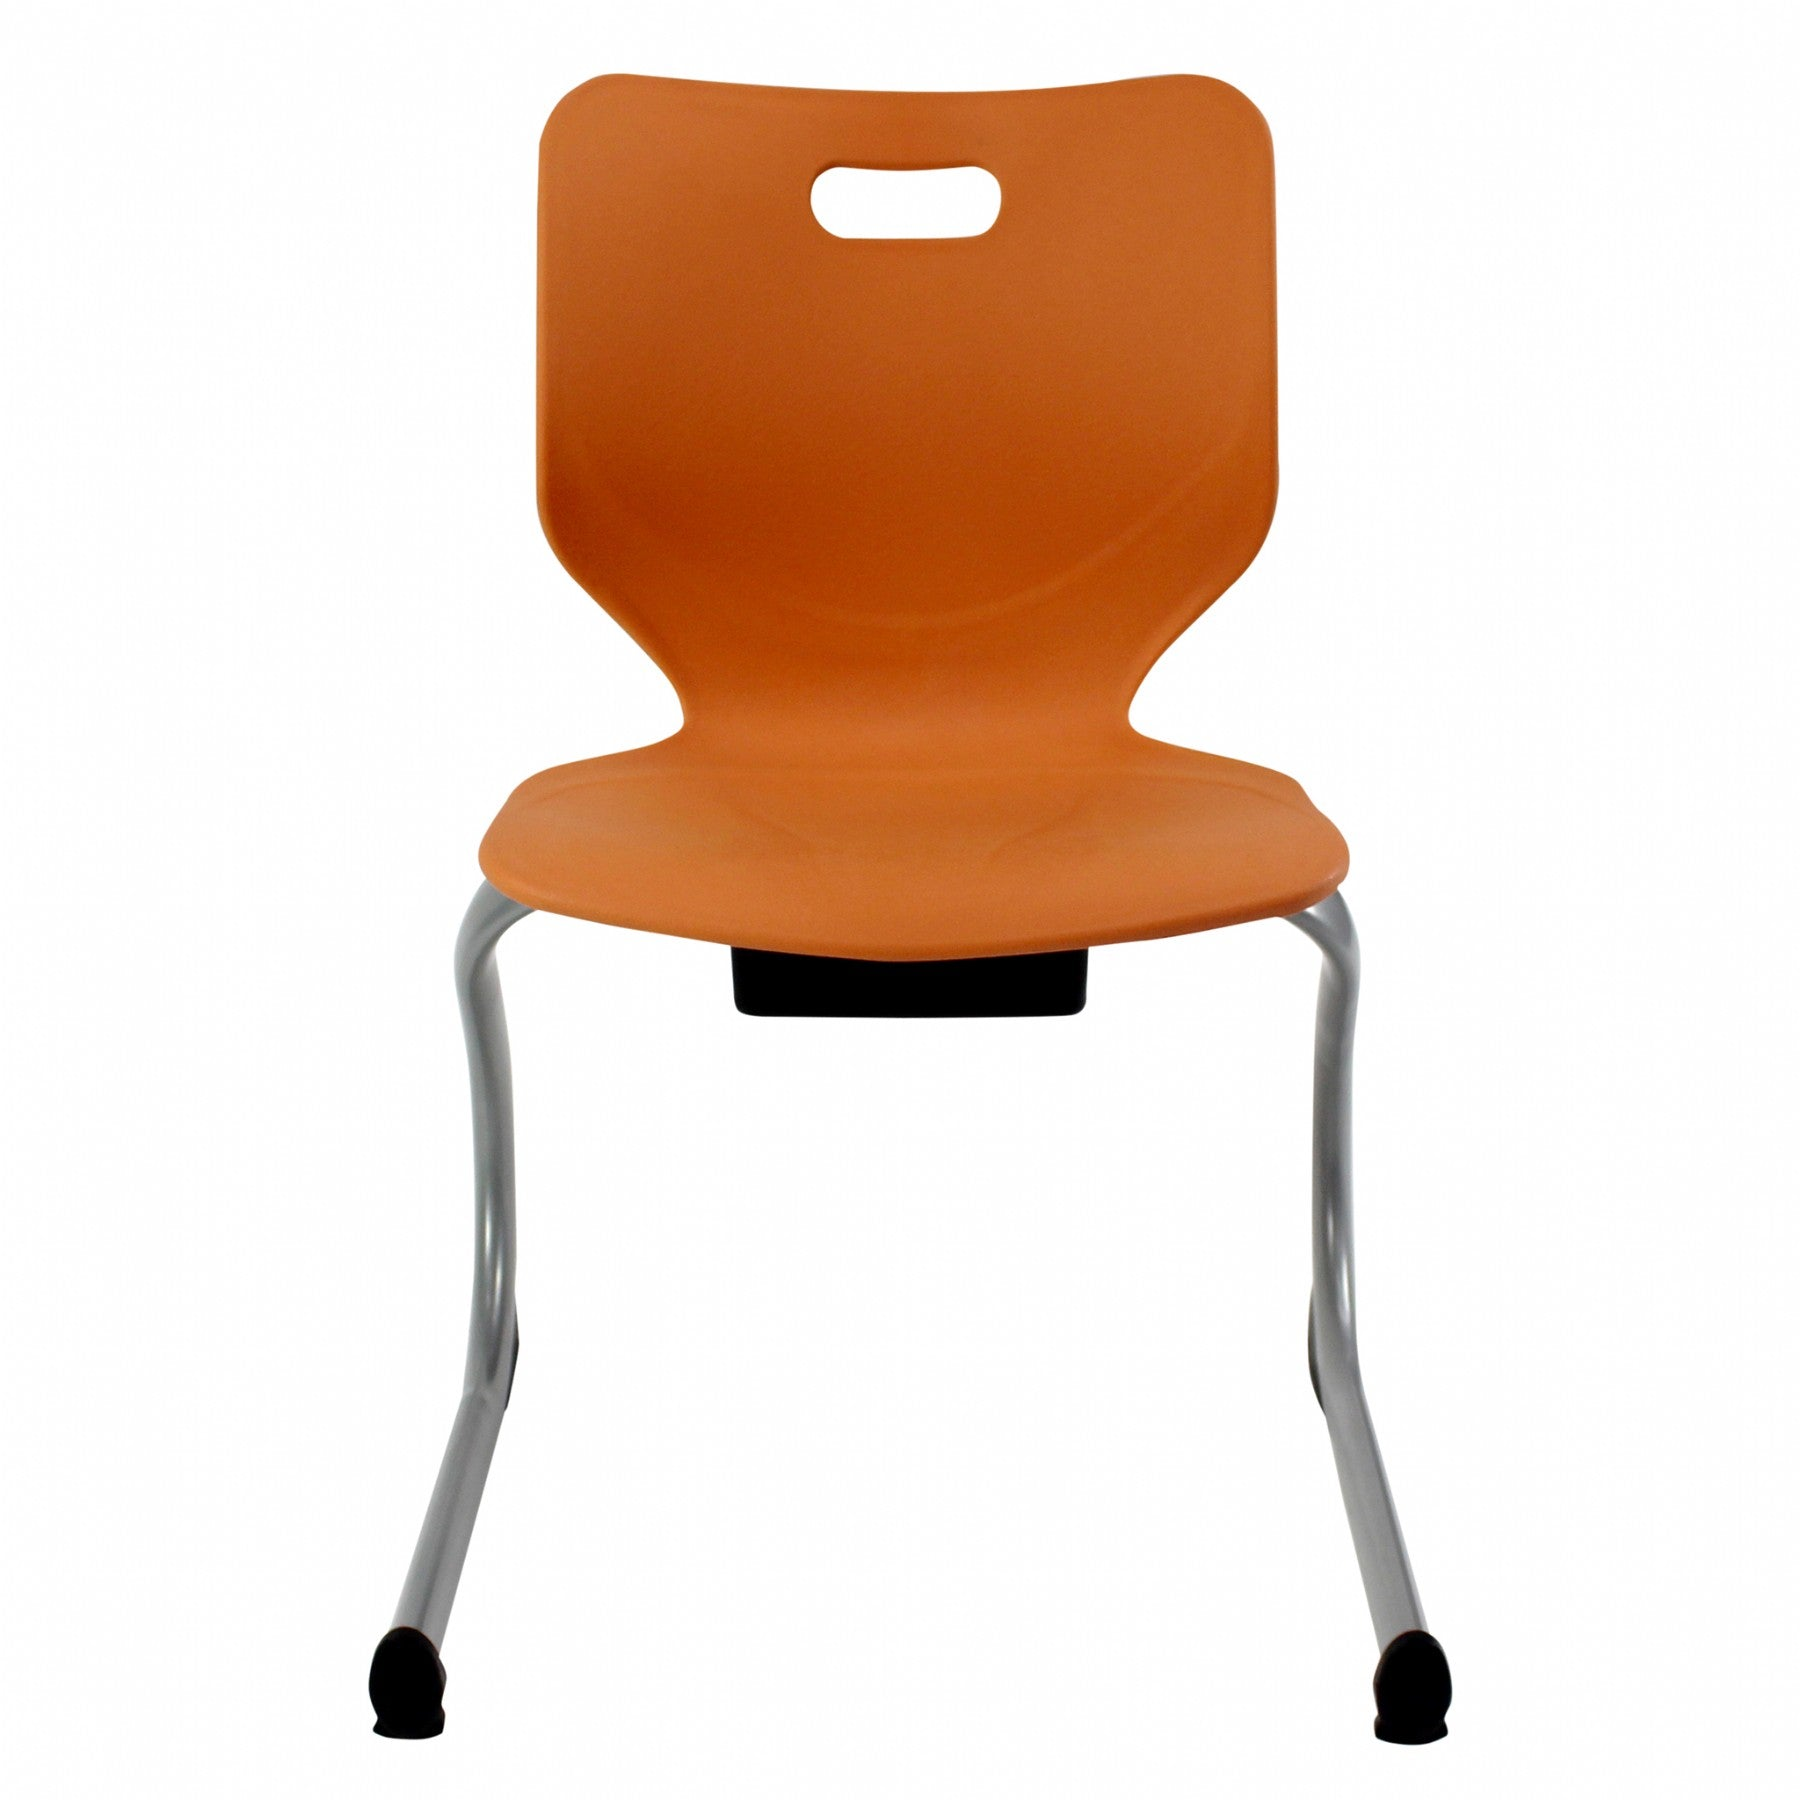 Mobel Form Chair Orange